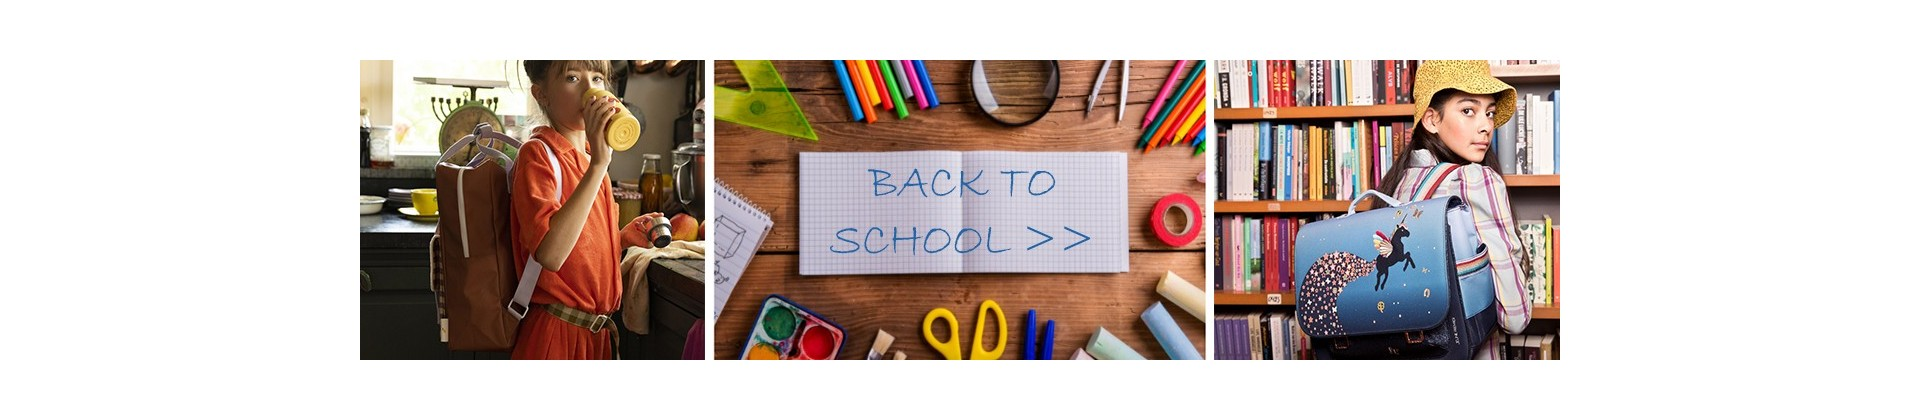 School bags, backpacks and suitcases